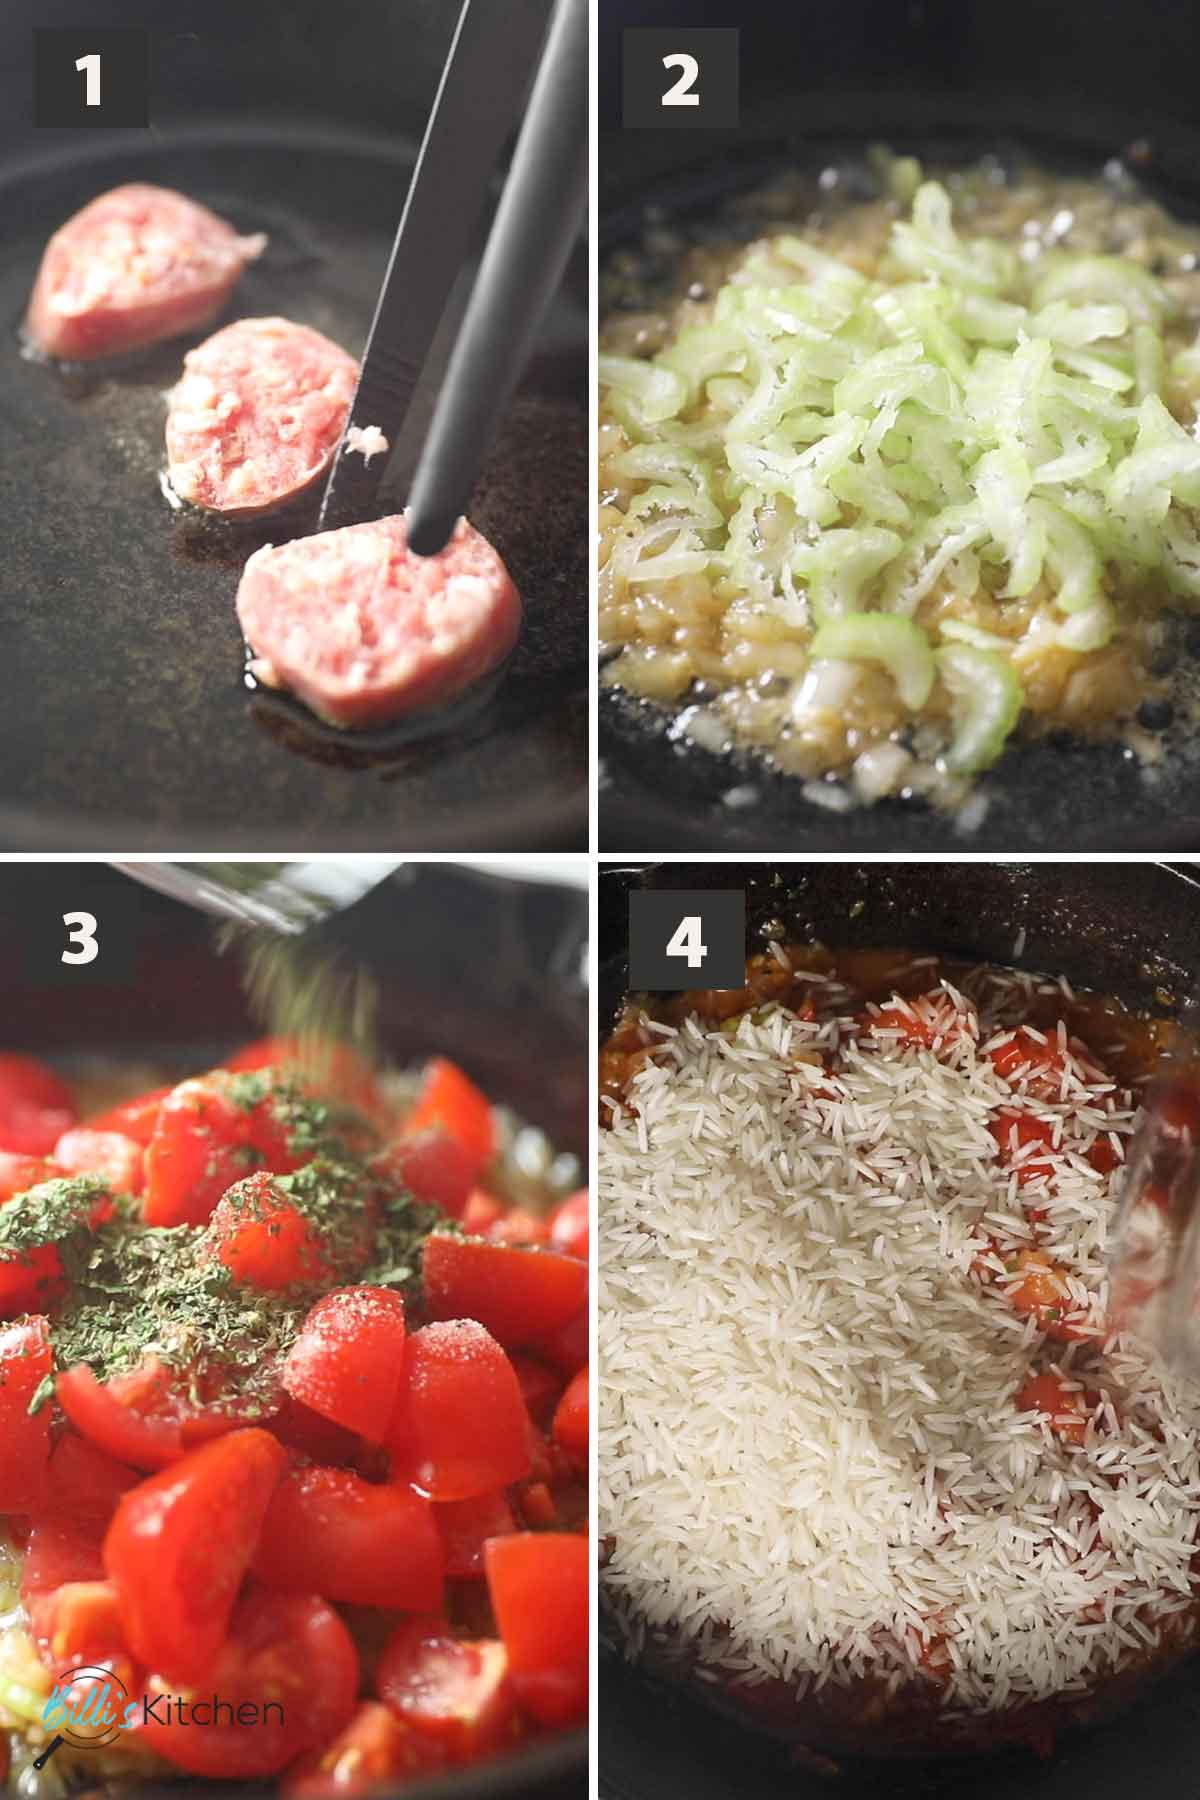 First part of a collage of images showing the step by step process on how to prepare sausage and rice.